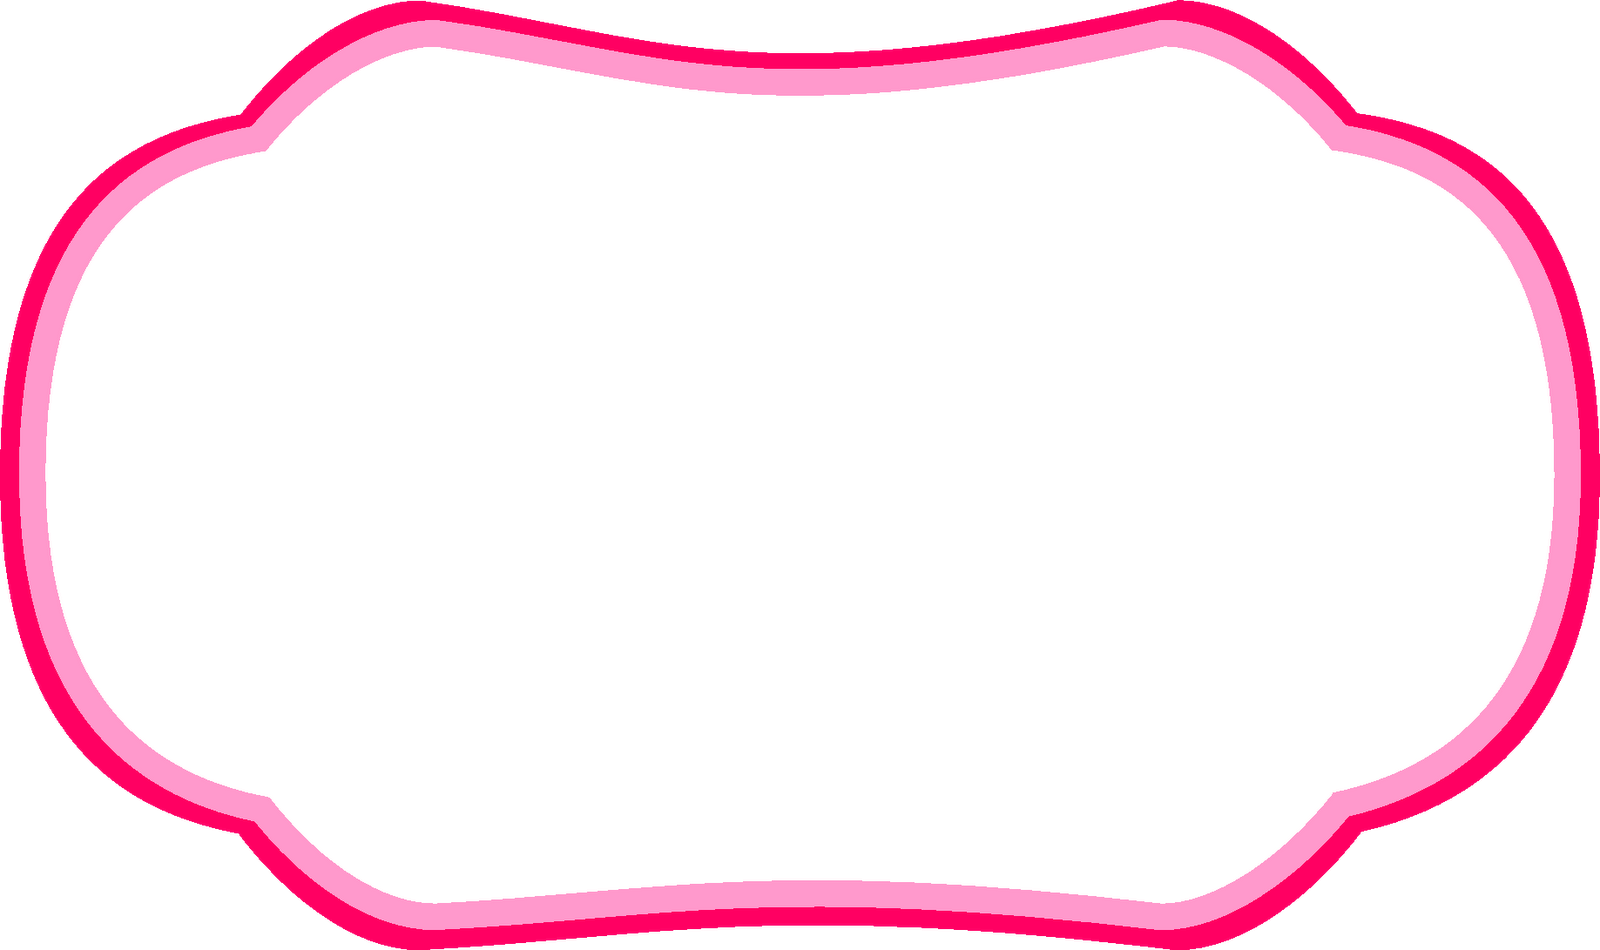 frames-acessorios-para-template--png-brushes-diversos--cute--tumblr ...